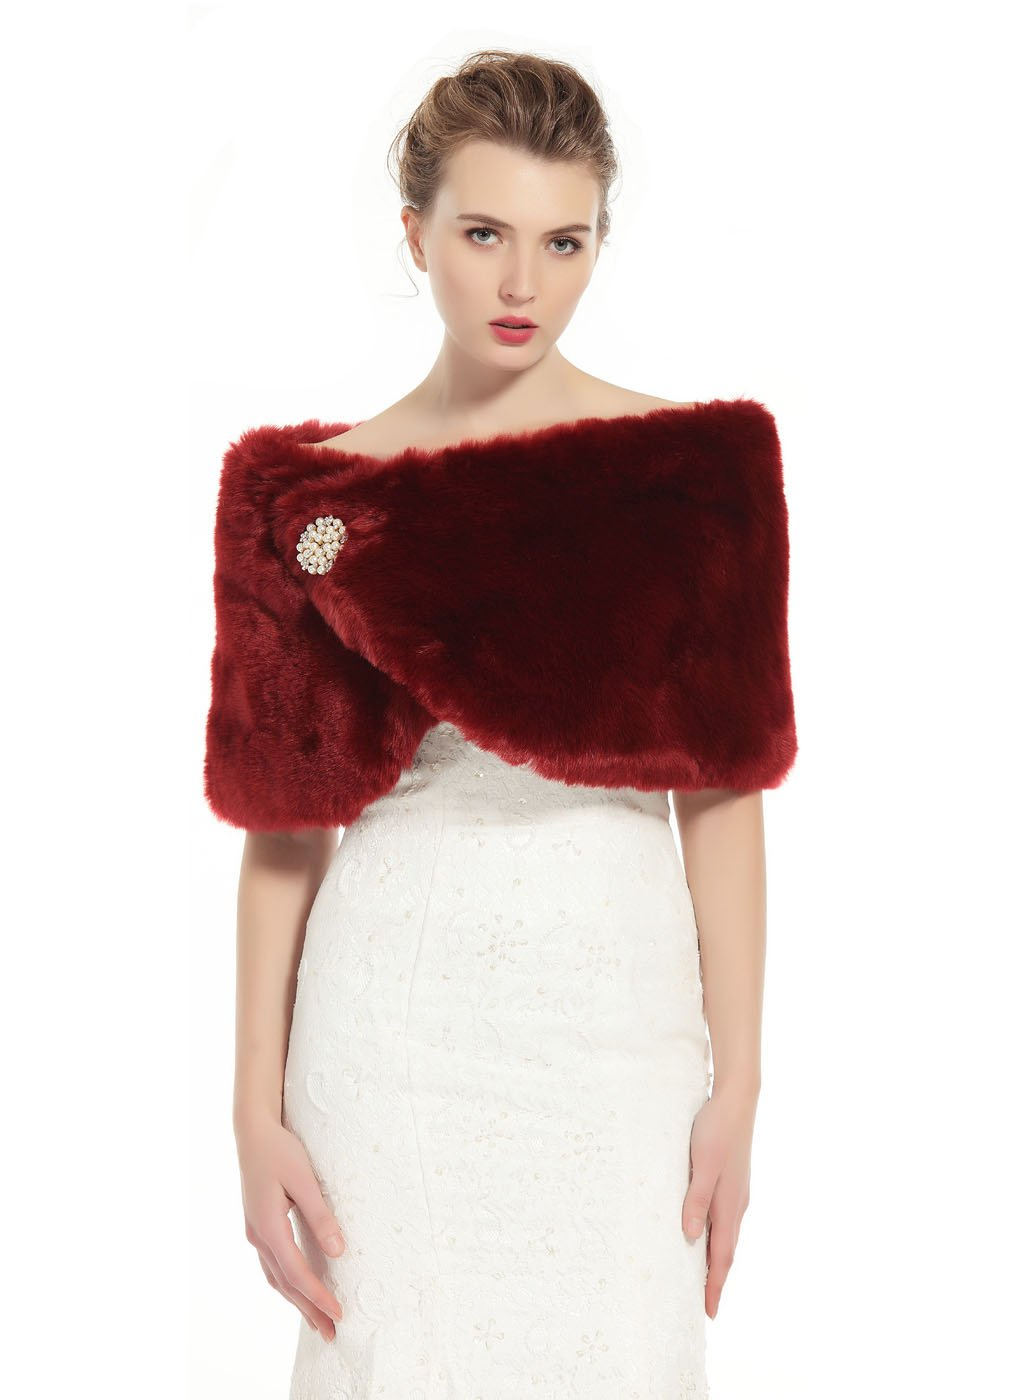 BEAUTELICATE Faux Fur Wrap Shawl Women's Shrug Bridal Stole for Winter Wedding Party Free Brooch Wine Red